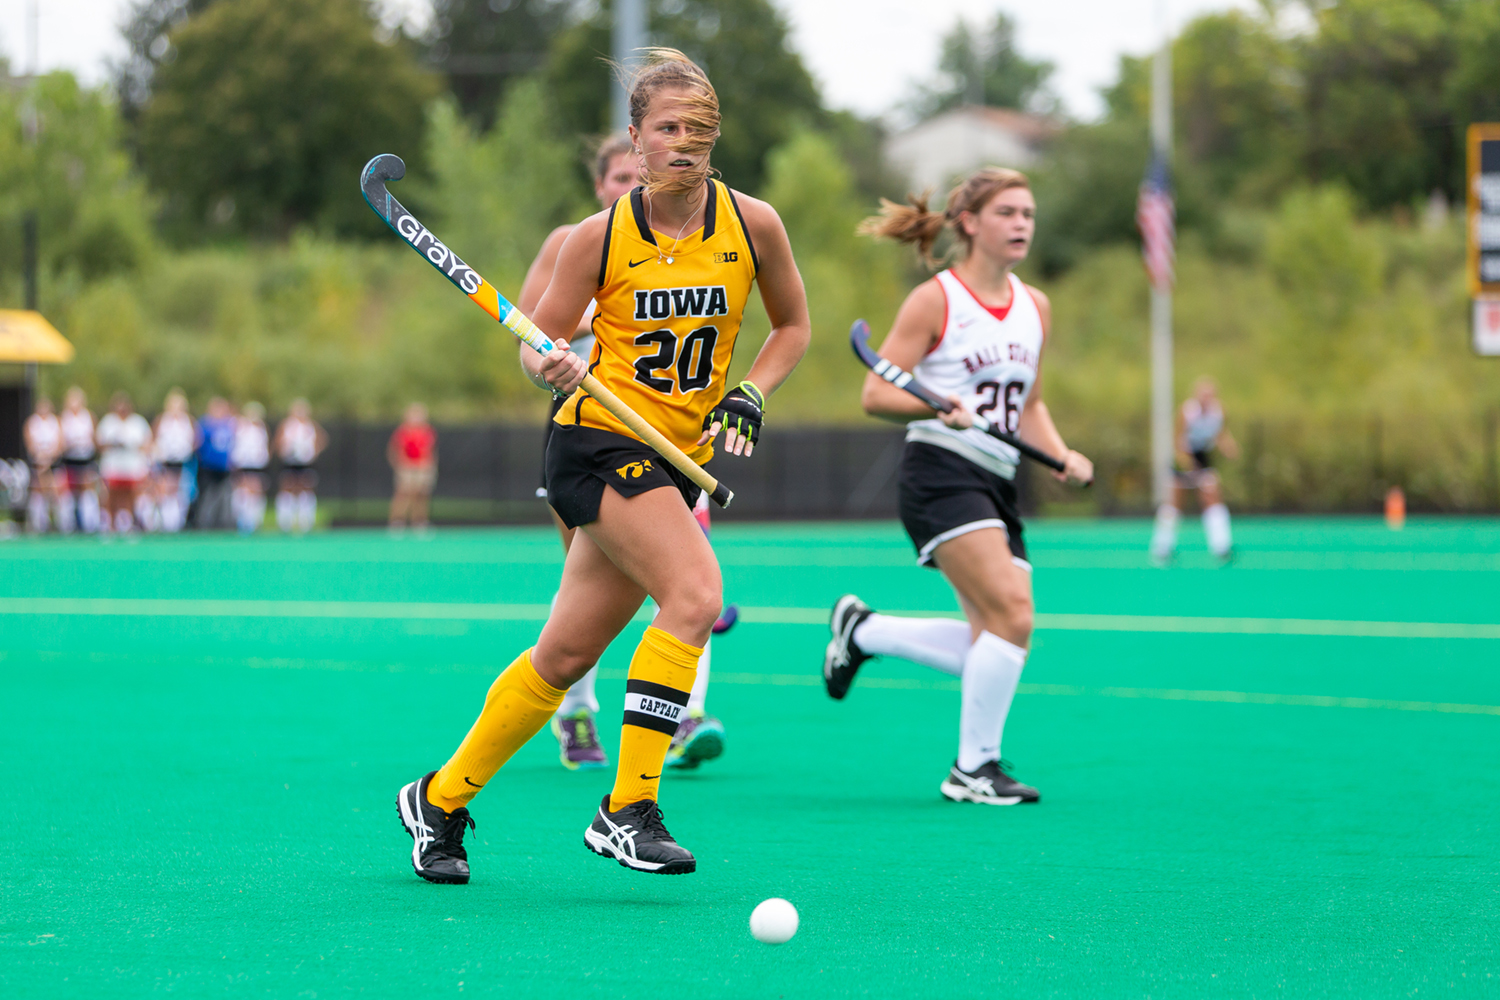 Iowa's Sophie Sunderland chases down the ball during a game against Ball State on Sunday, Sept. 2, 2018. The Hawkeyes defeated the Cardinals 7–1.